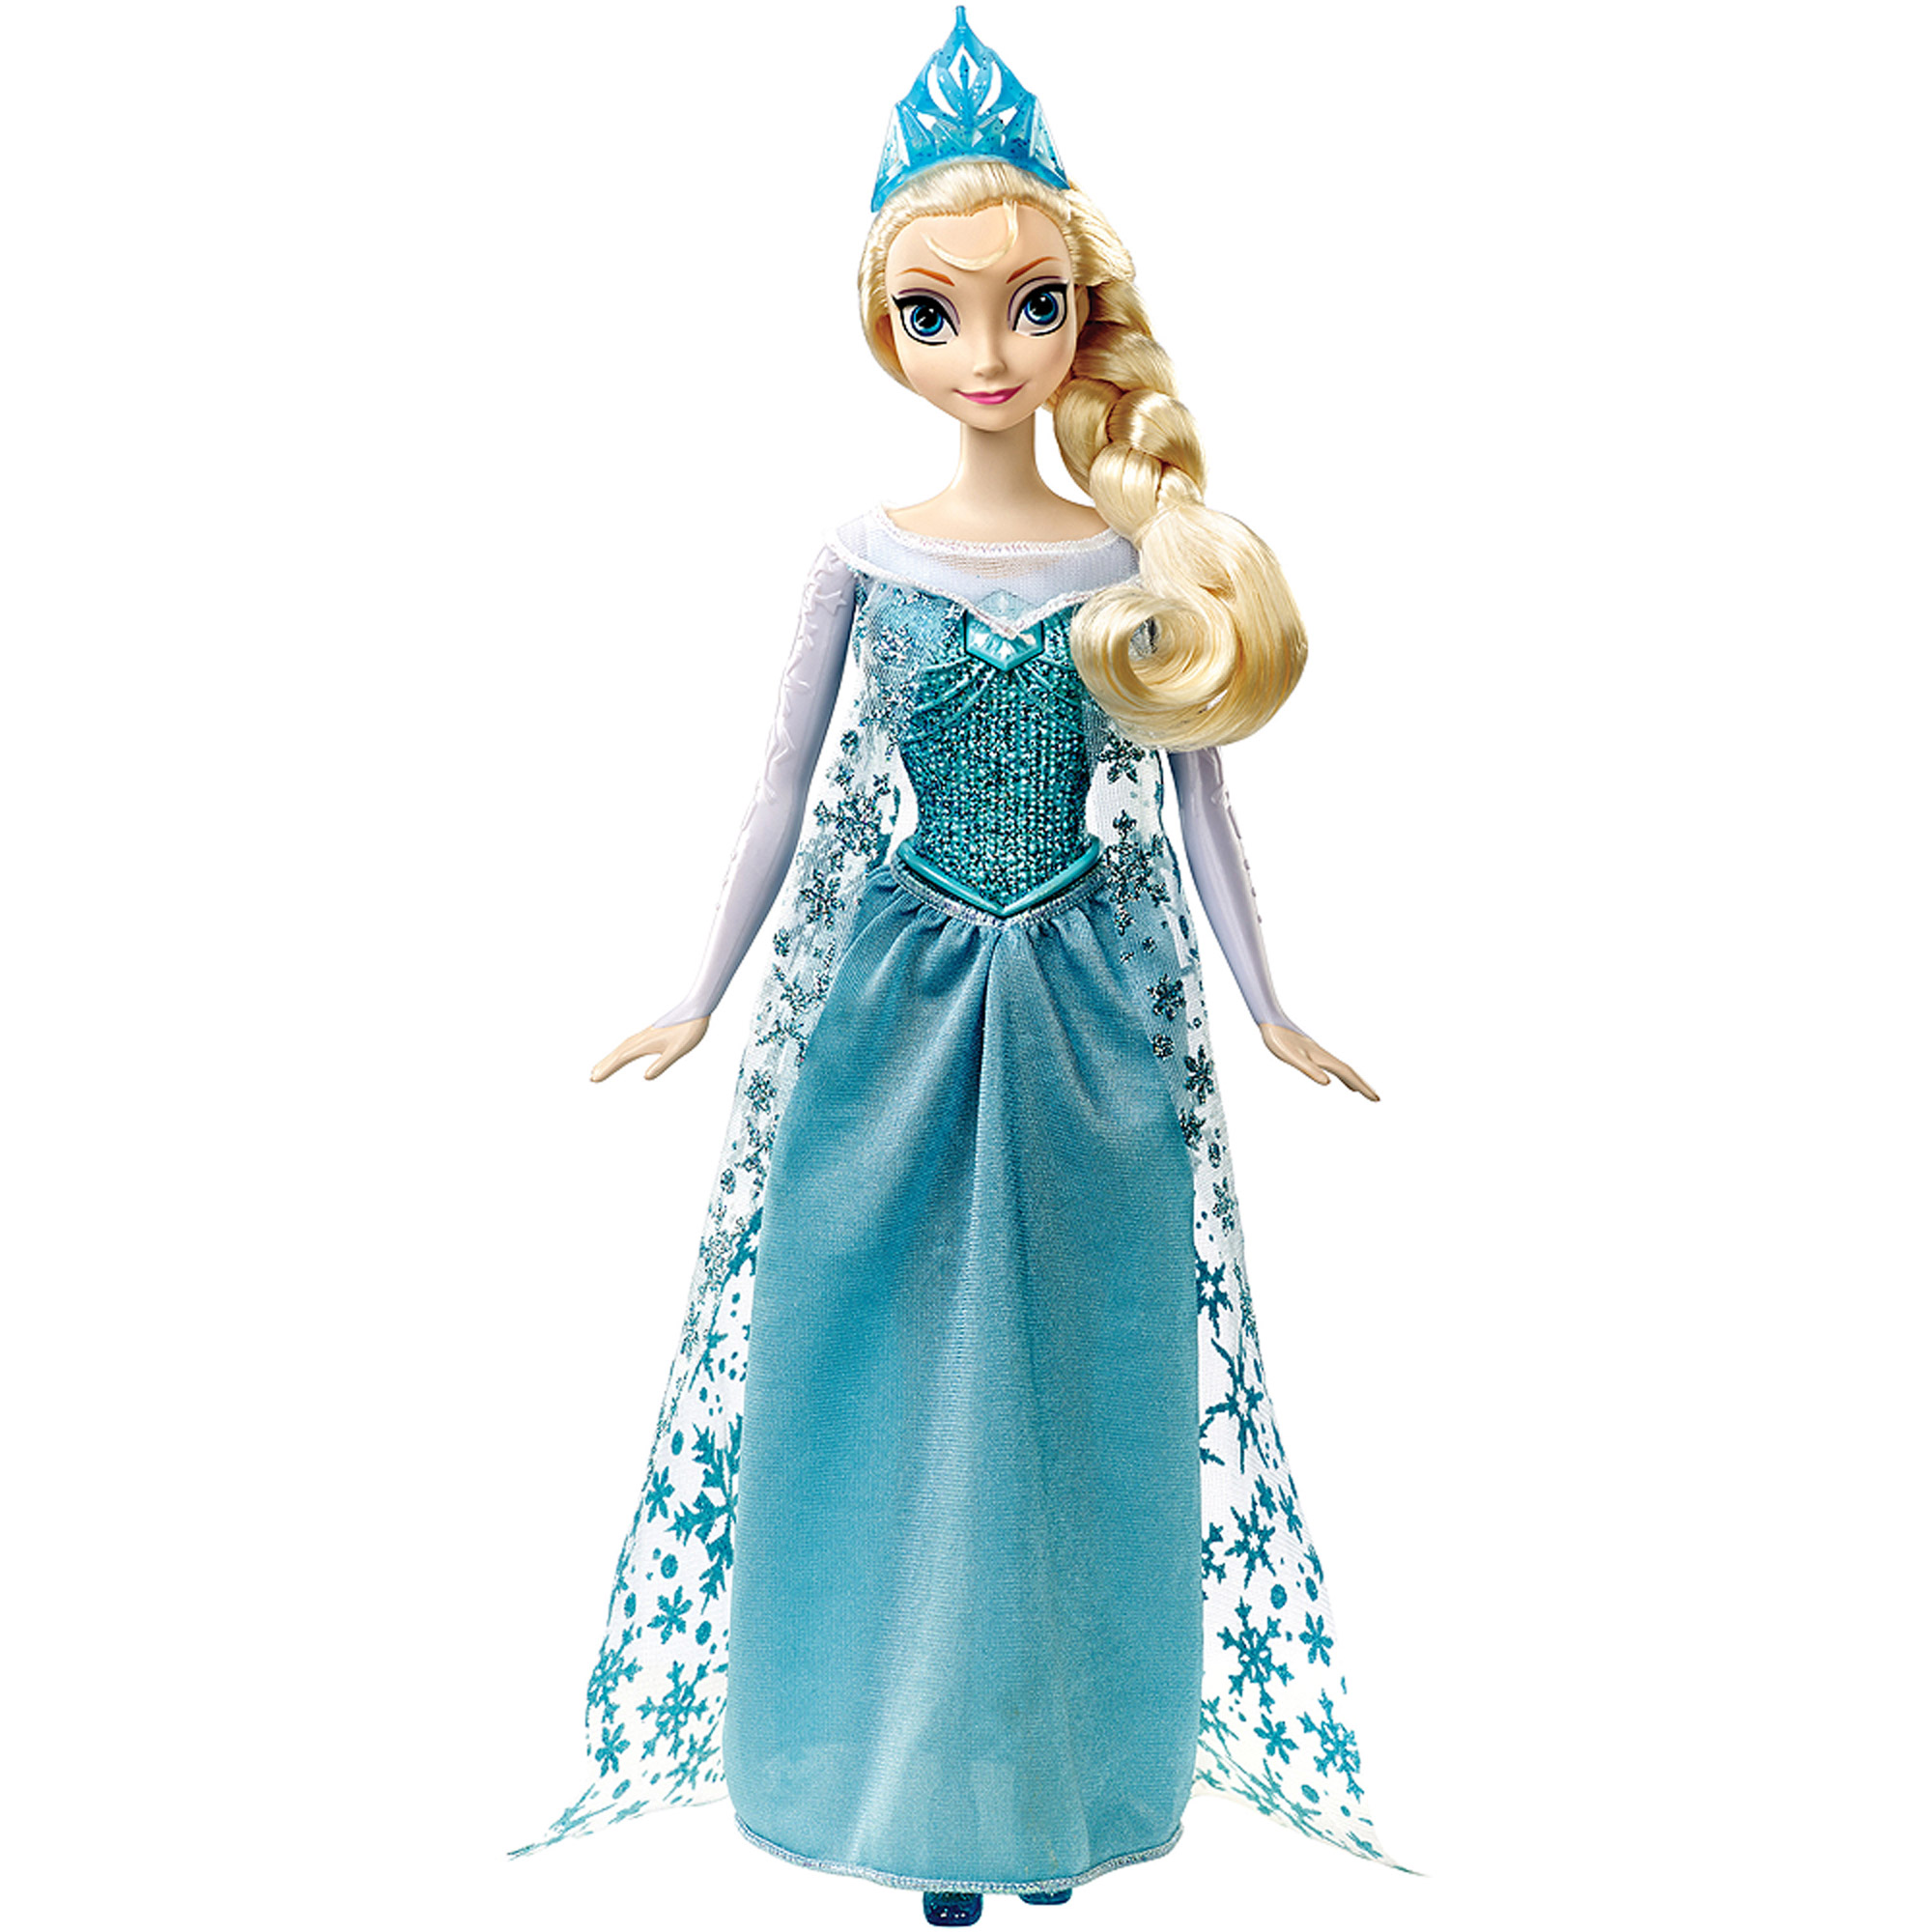 Disney Frozen Elsa Singing Doll by Mattel